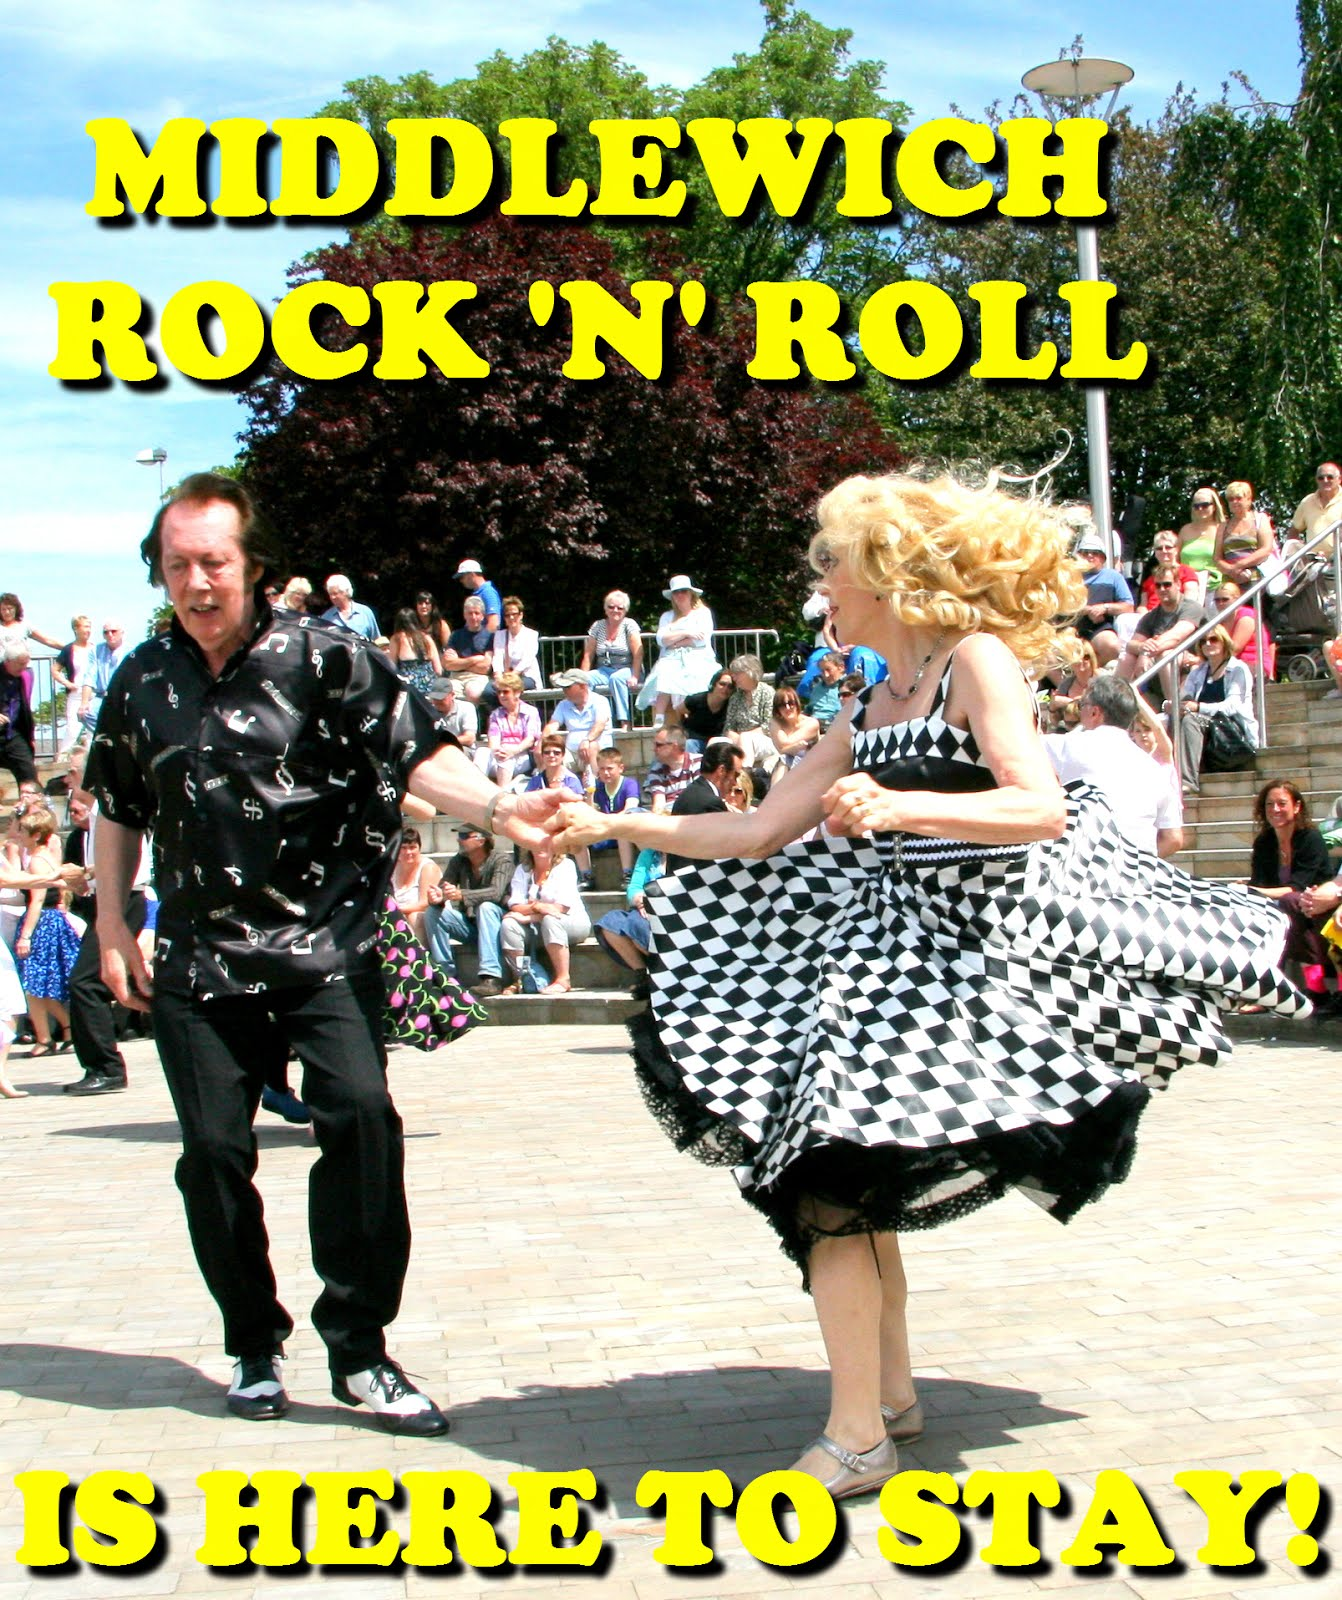 MUSIC IN MIDDLEWICH